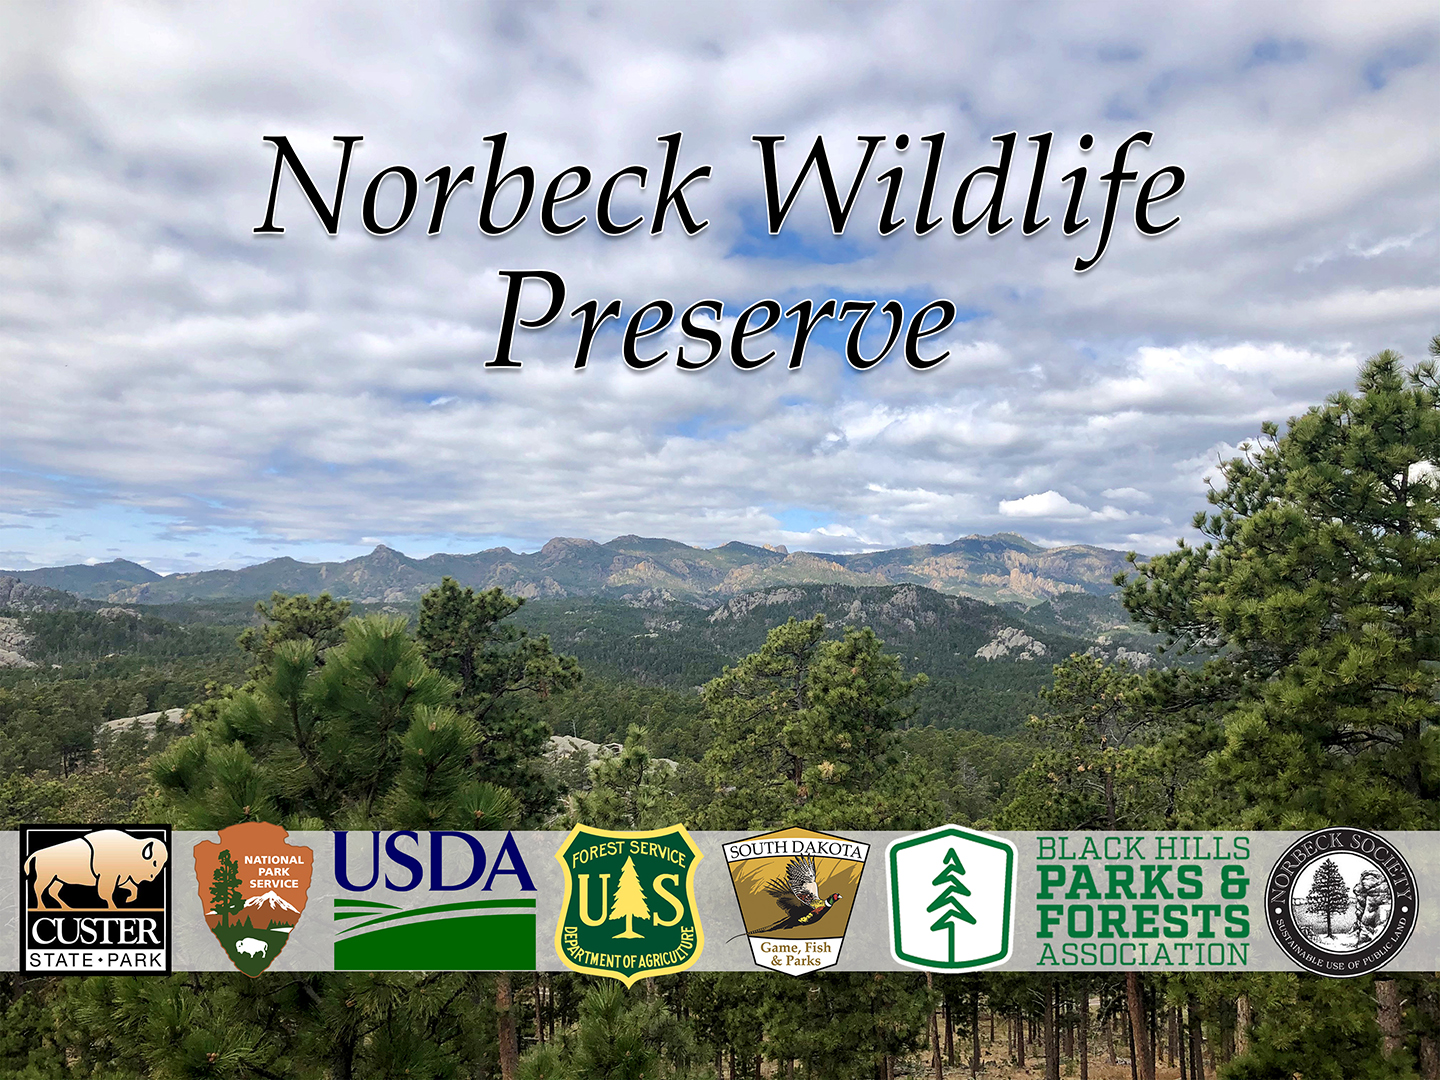 Norbeck Wildlife Preserve - Celebrating 100 Years